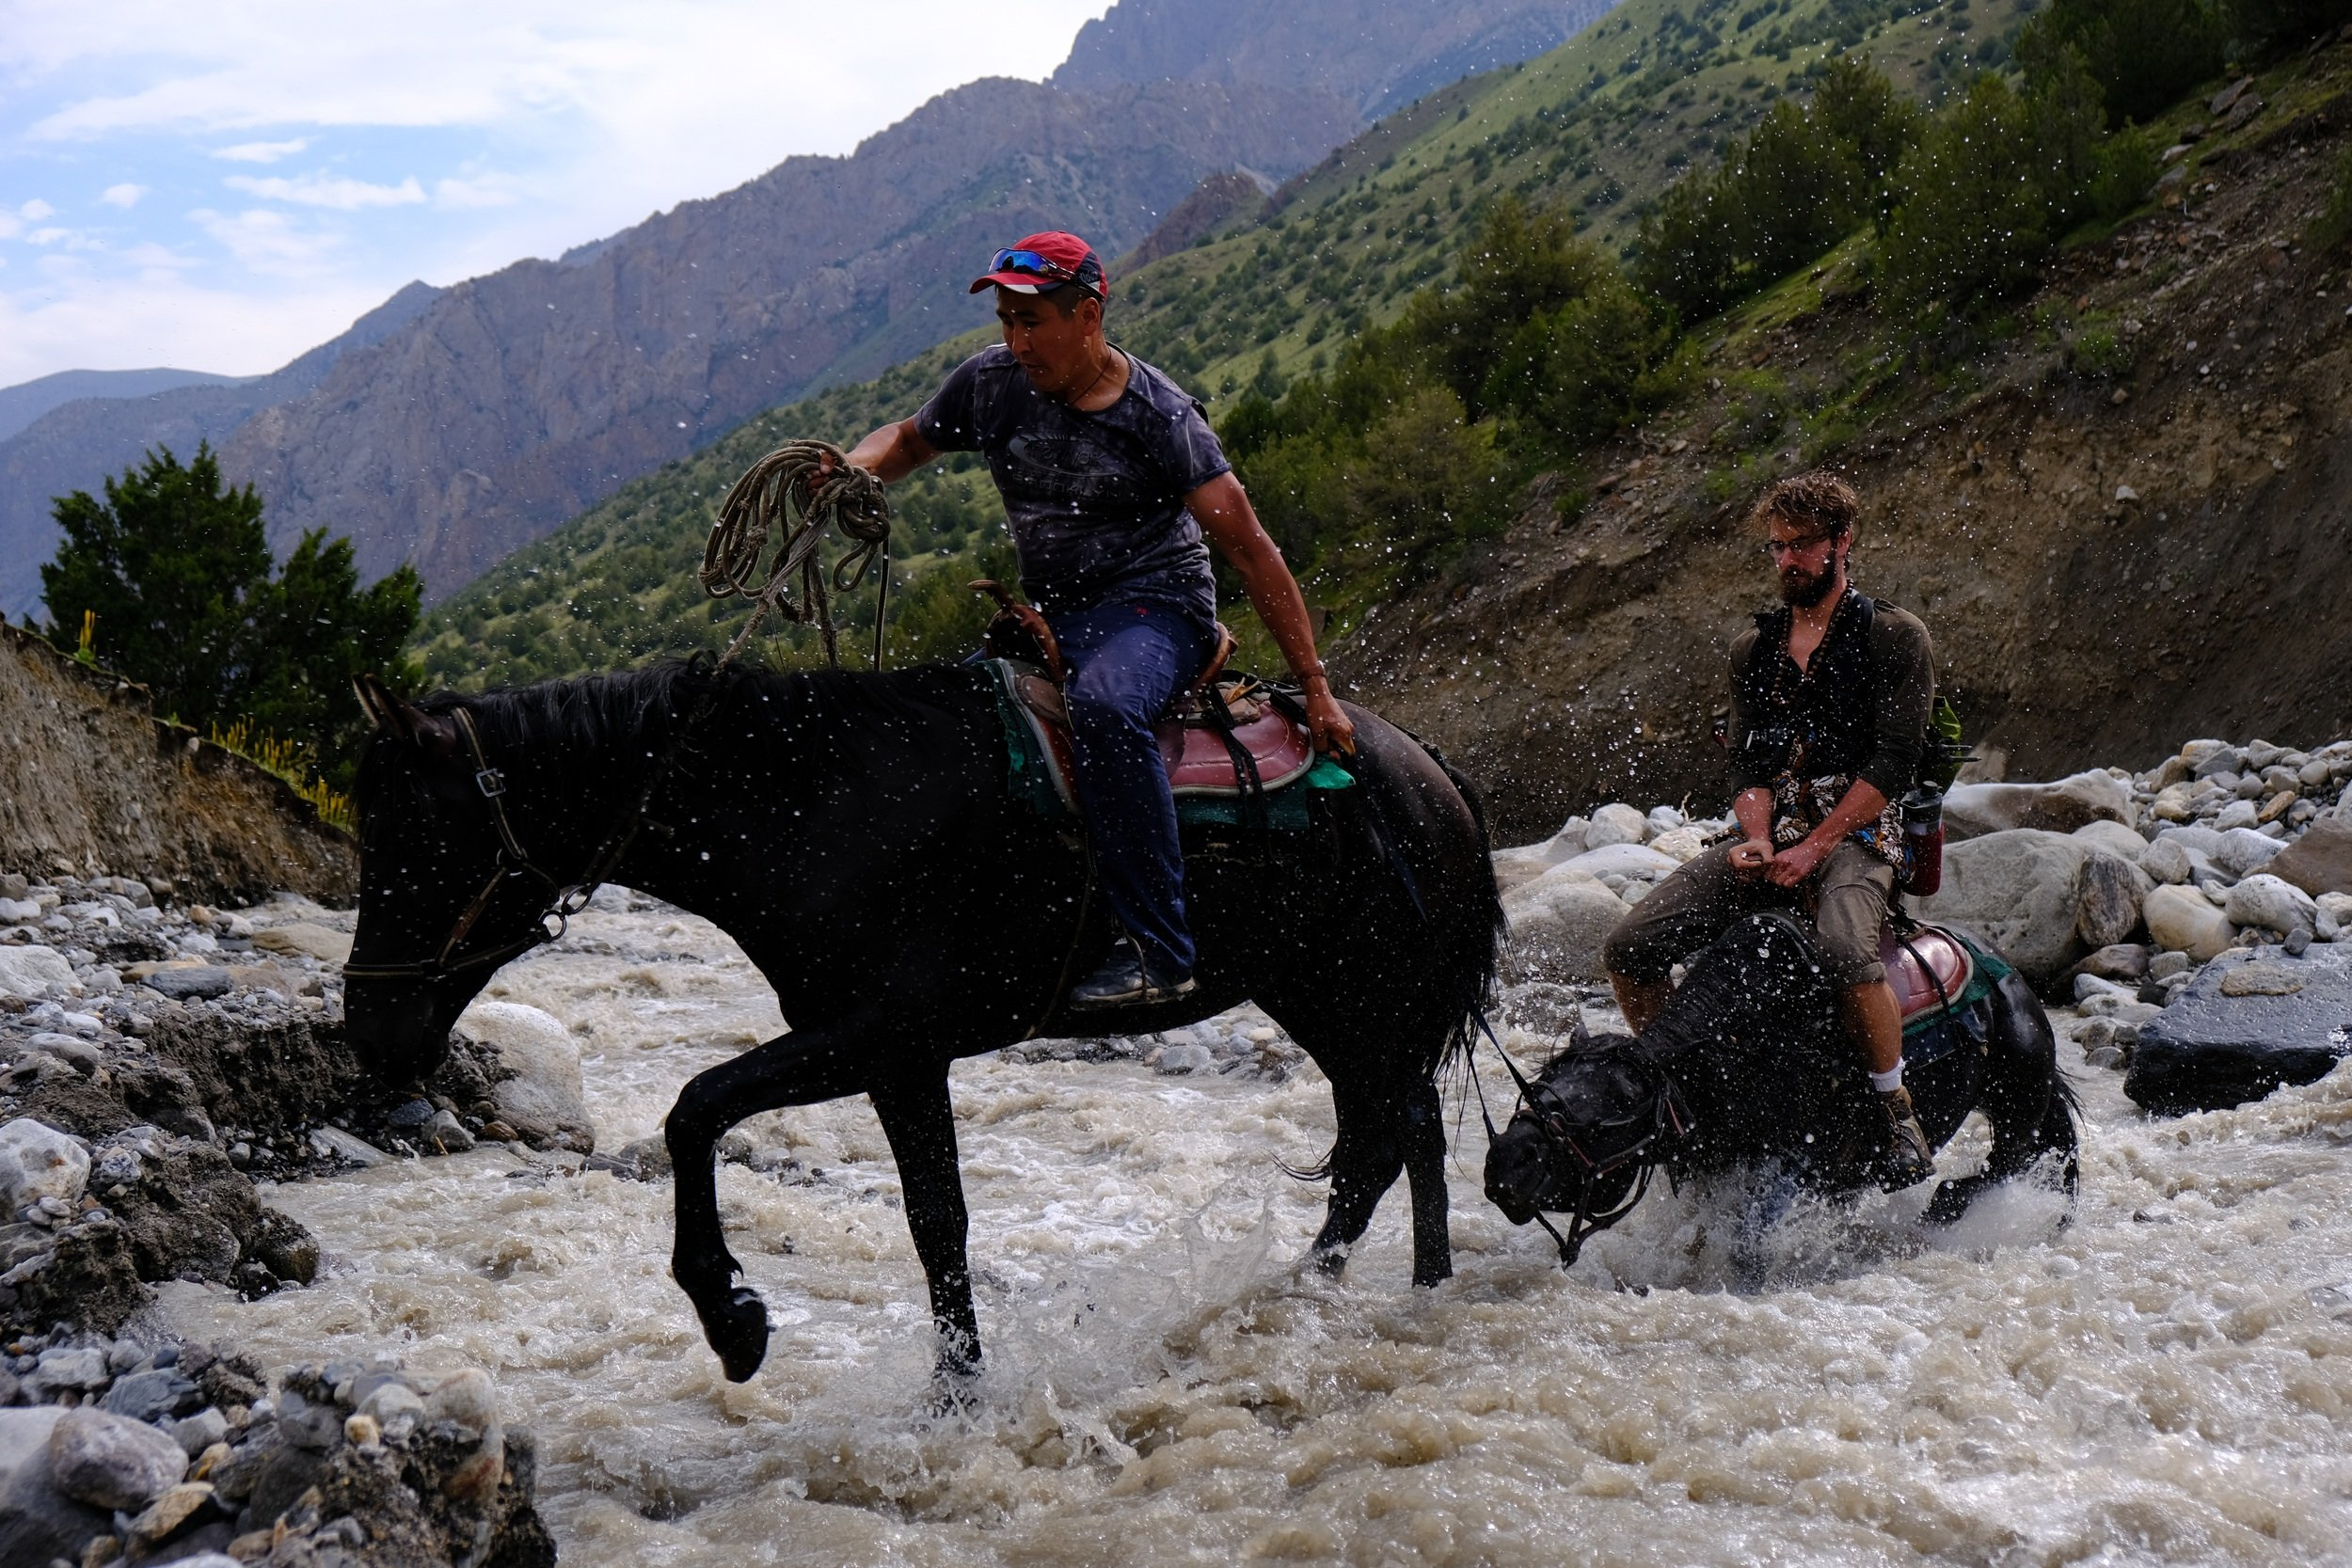 riding a horse safely in kyrgyzstan